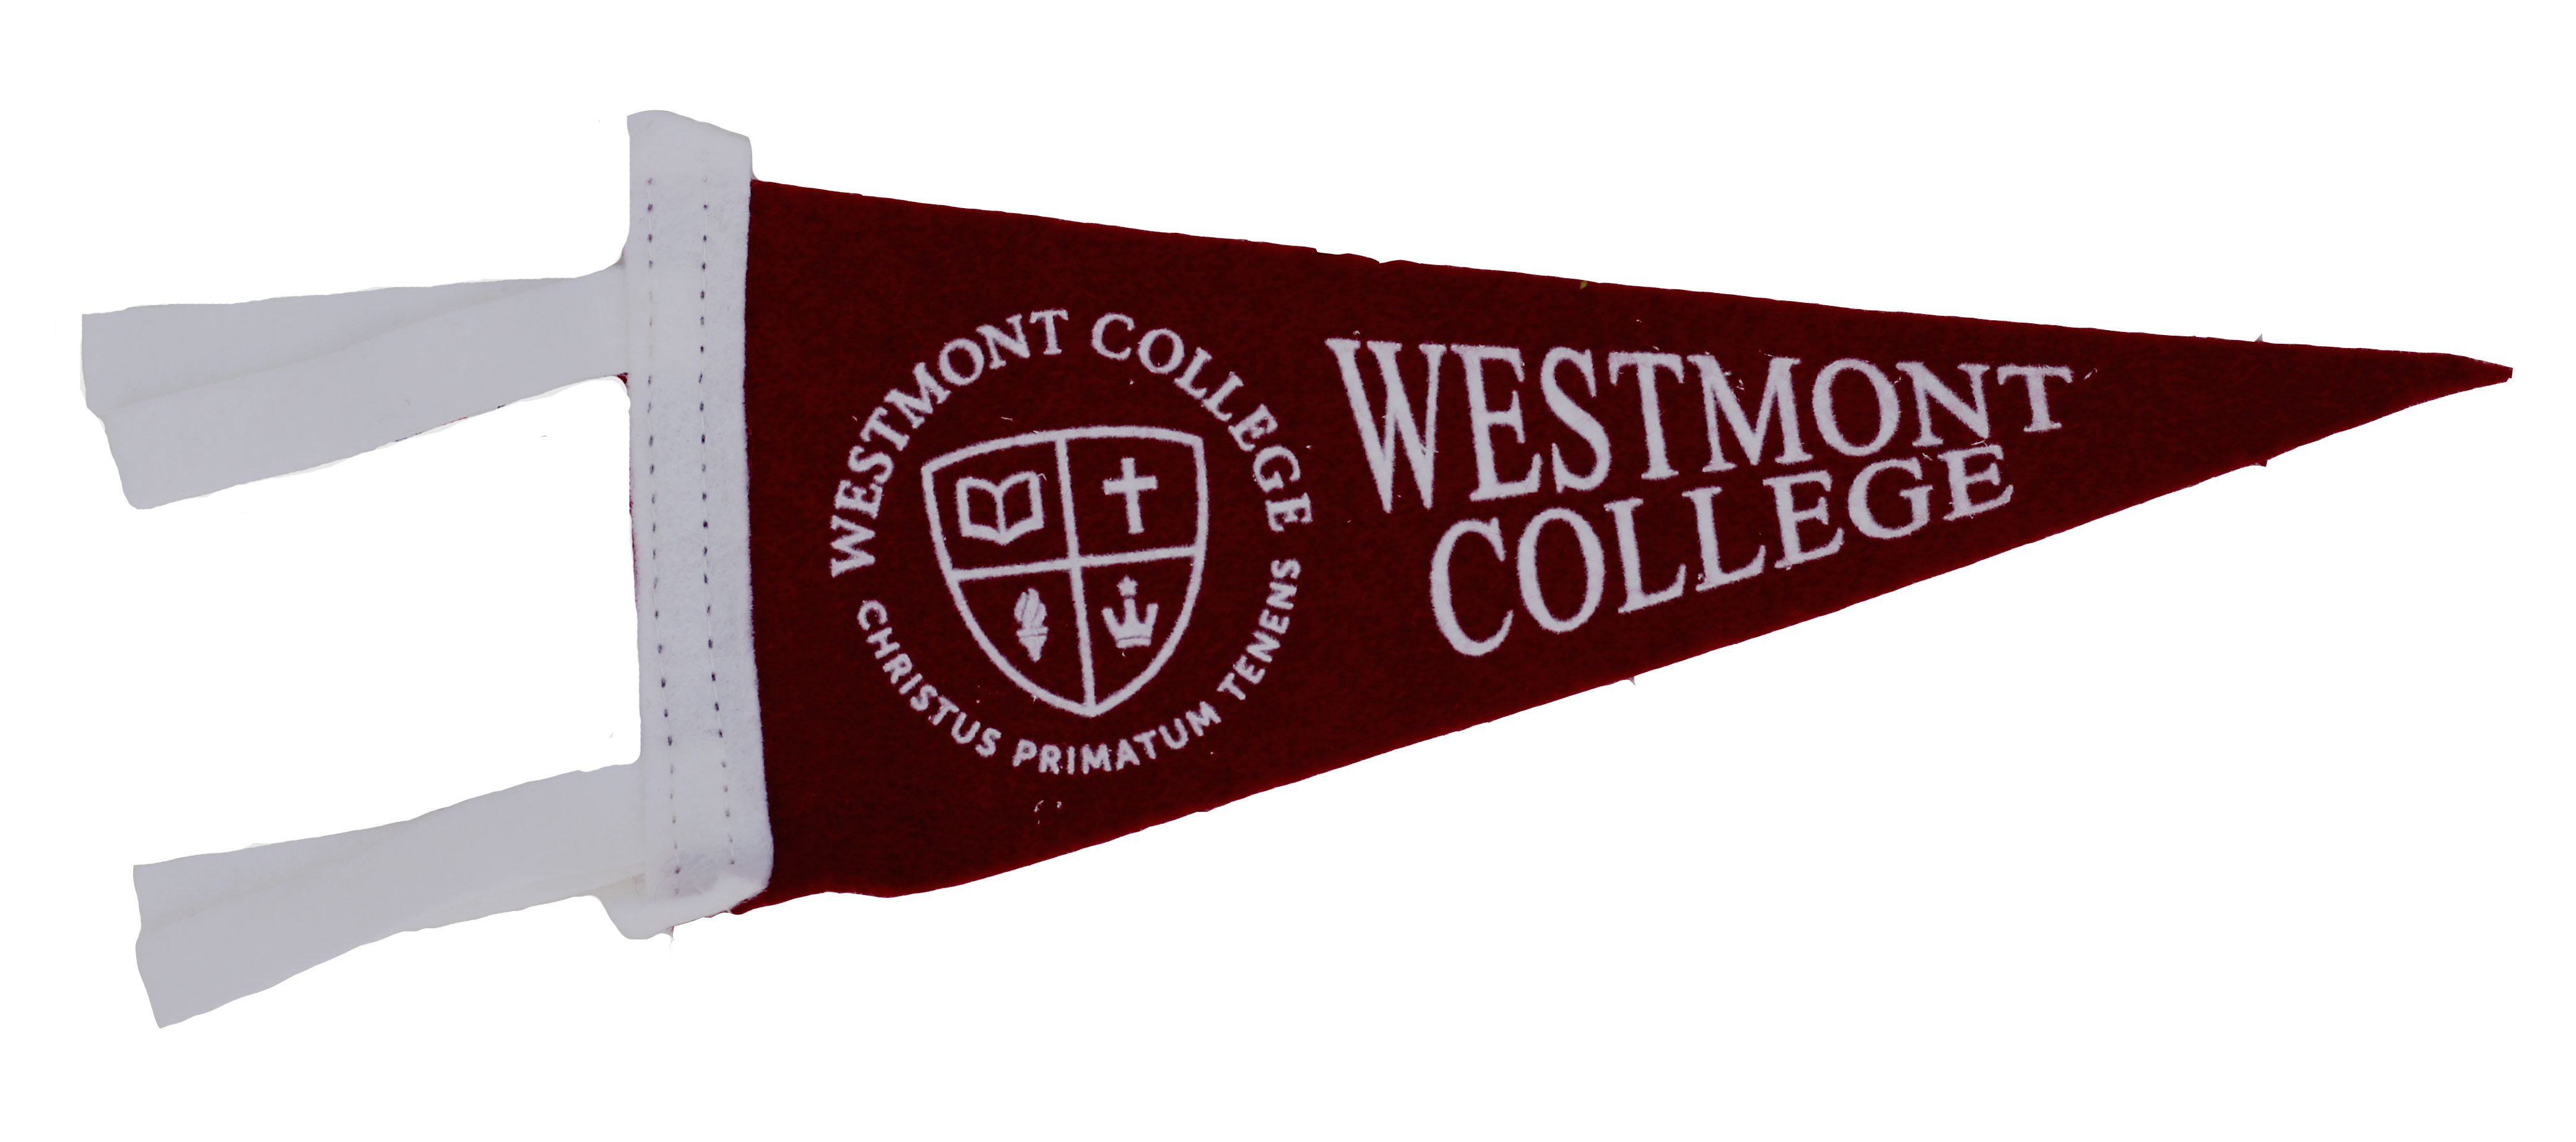 Image for the Collegiate Pacific 6x15 Seal Pennant product